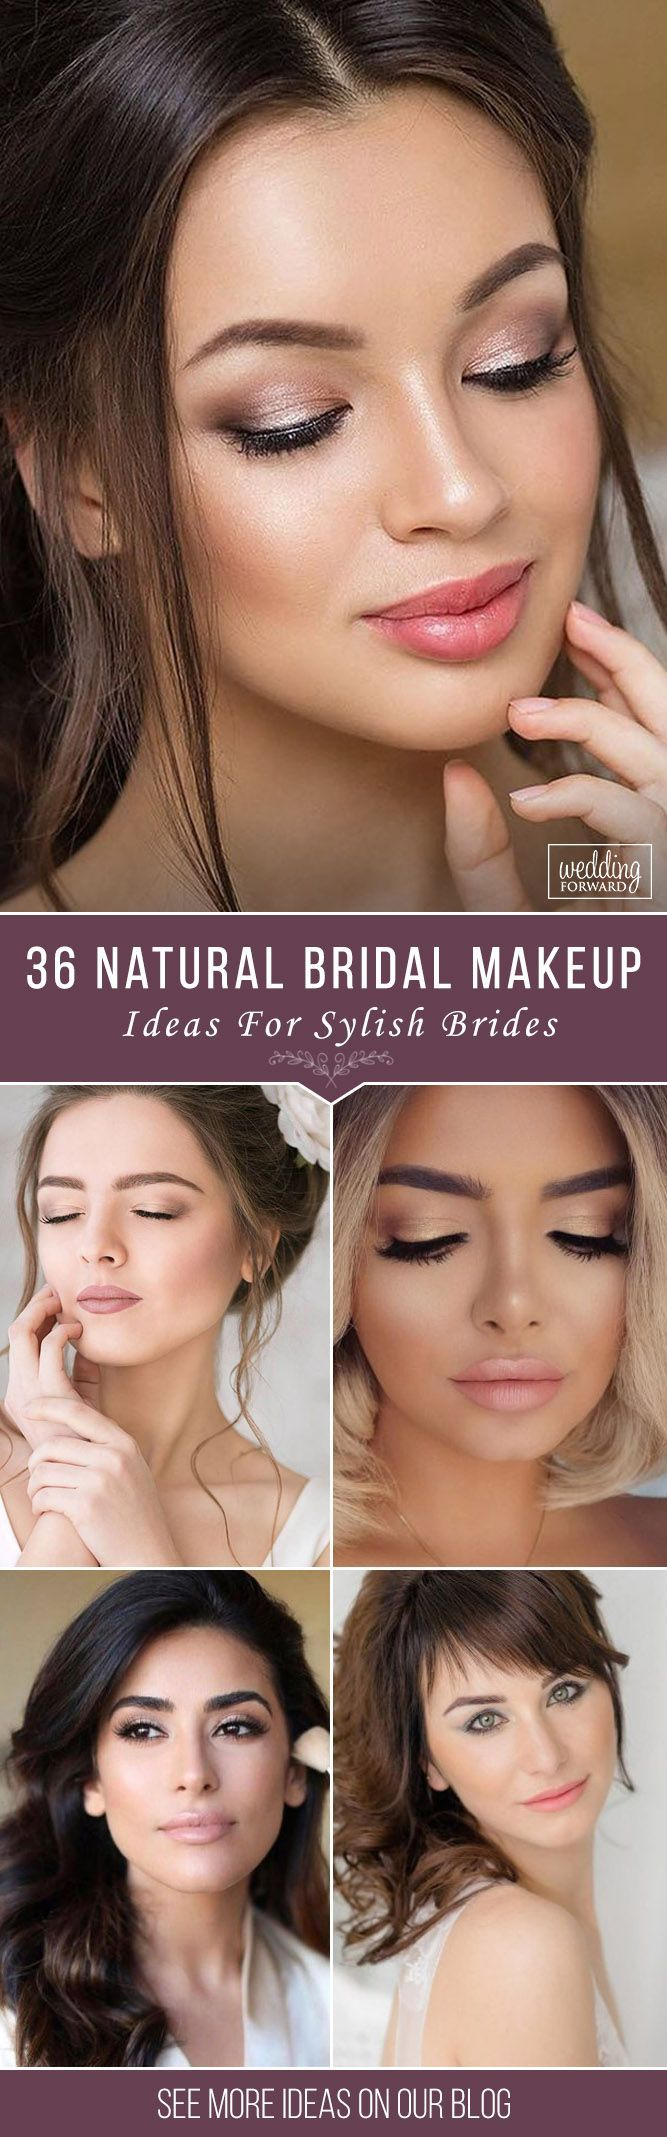 36 Ideas For Natural Bridal Makeup ❤️ Natural bridal makeup is a good choice to make your look tender and romantic. Look our collection of natural makeup ideas. See more: http://www.weddingforward.com/natural-bridal-makeup/ #wedding #bride #naturalbridalmakeup